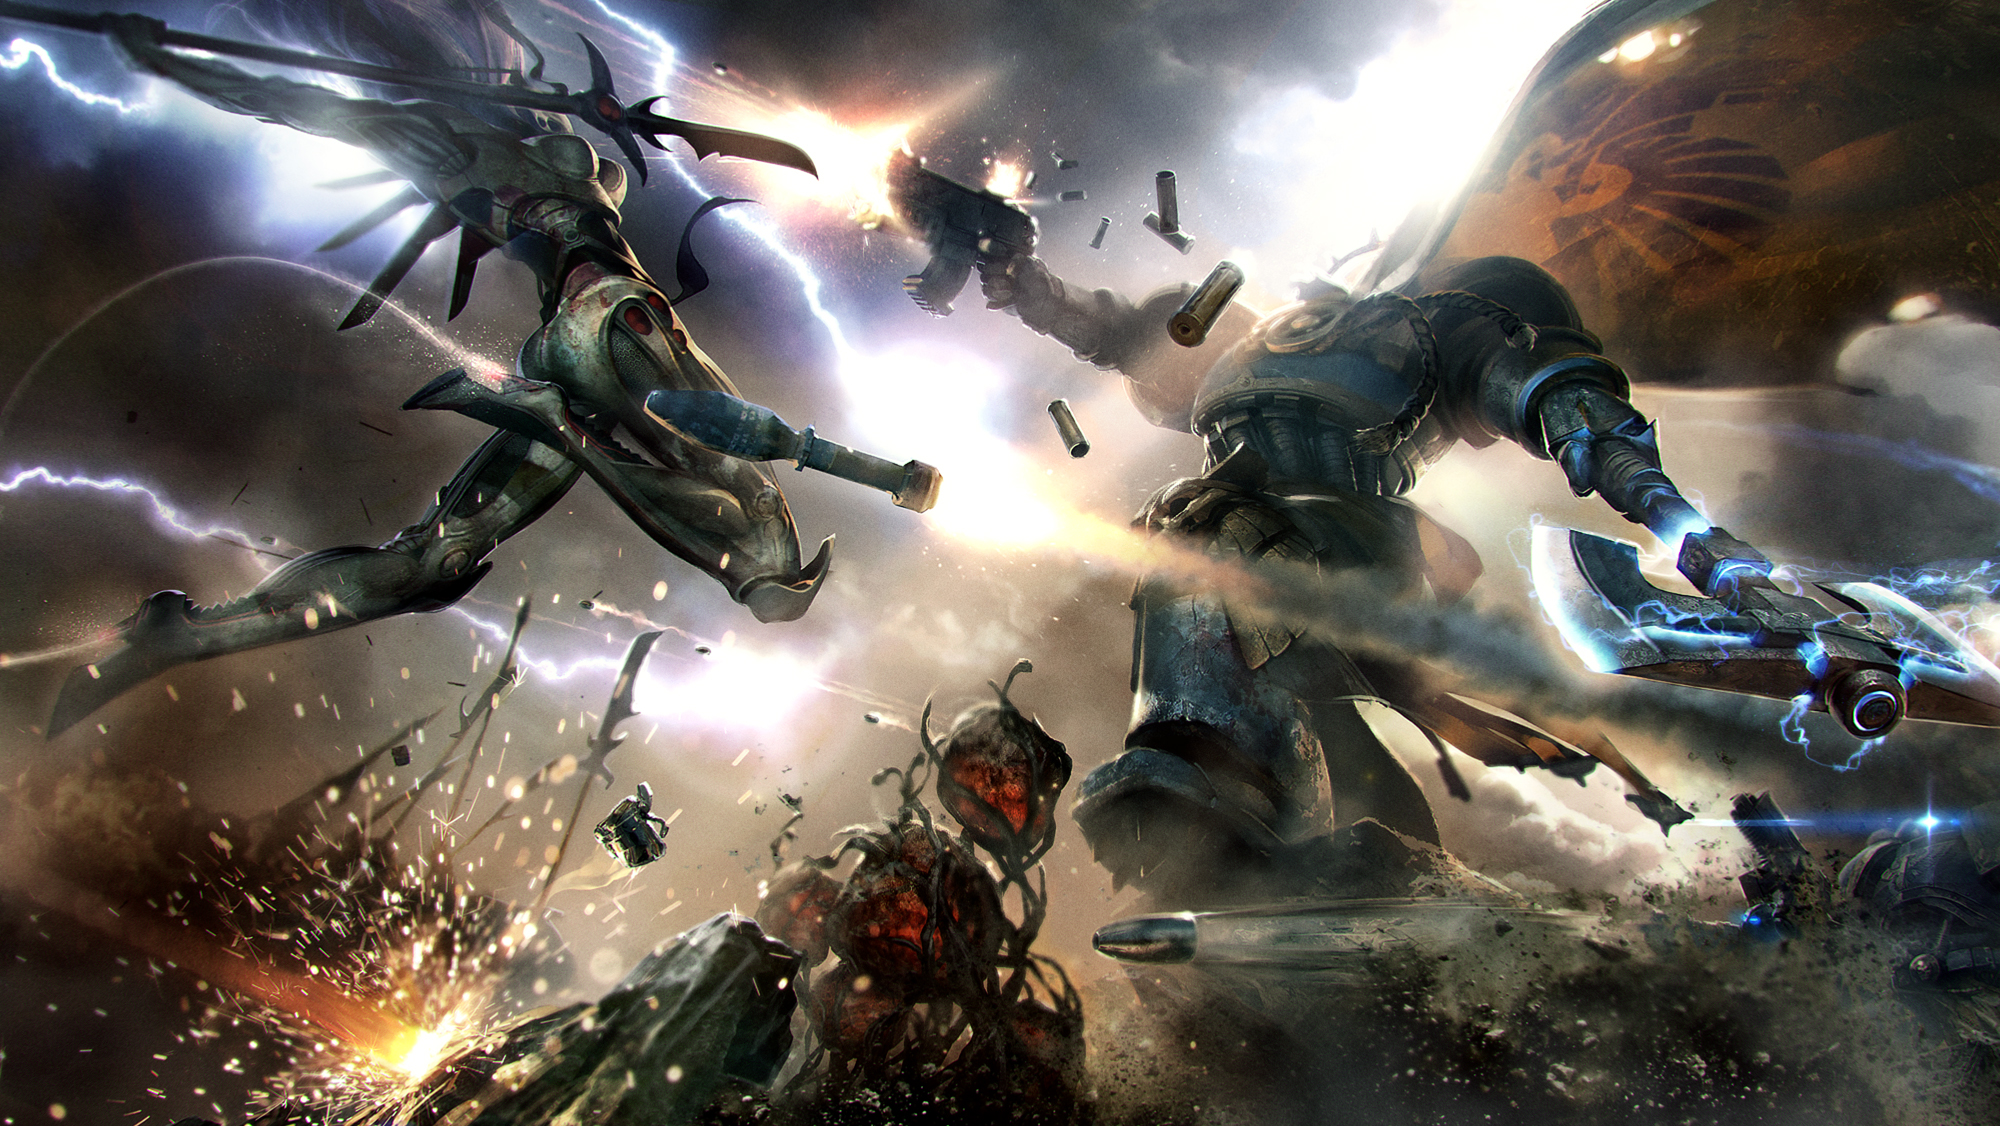 Warhammer 40k Wallpaper 1080p Posted By Christopher Tremblay